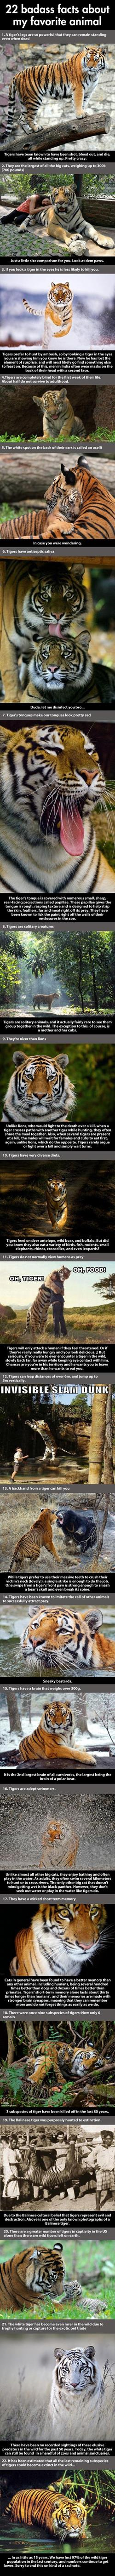 Animal-AboutTiger